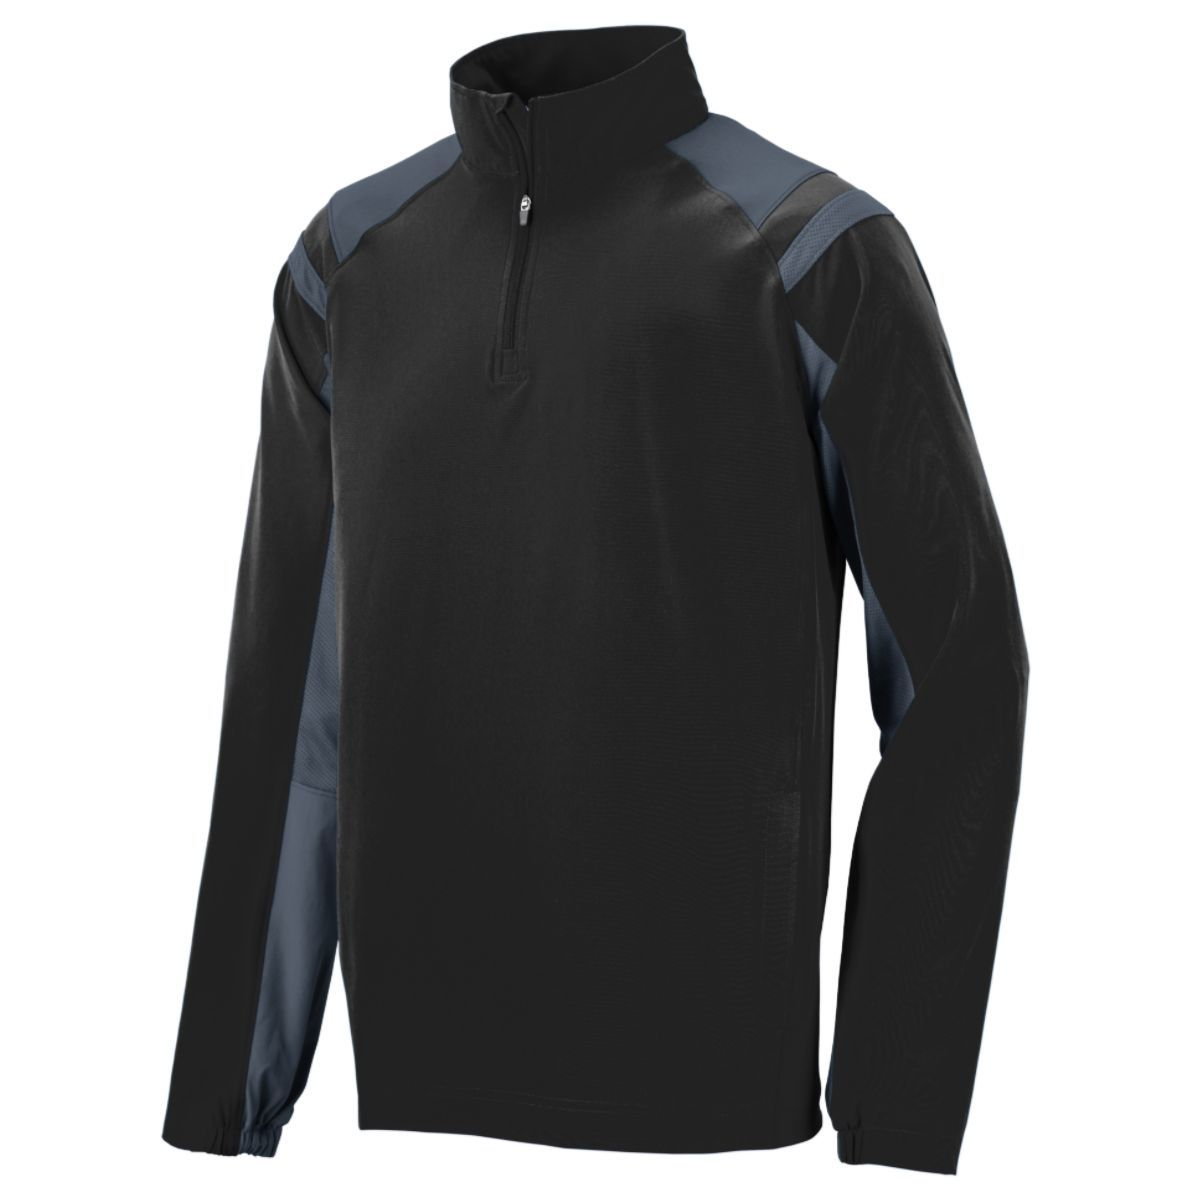 Doppler Pullover - BLACK/GRAPHITE